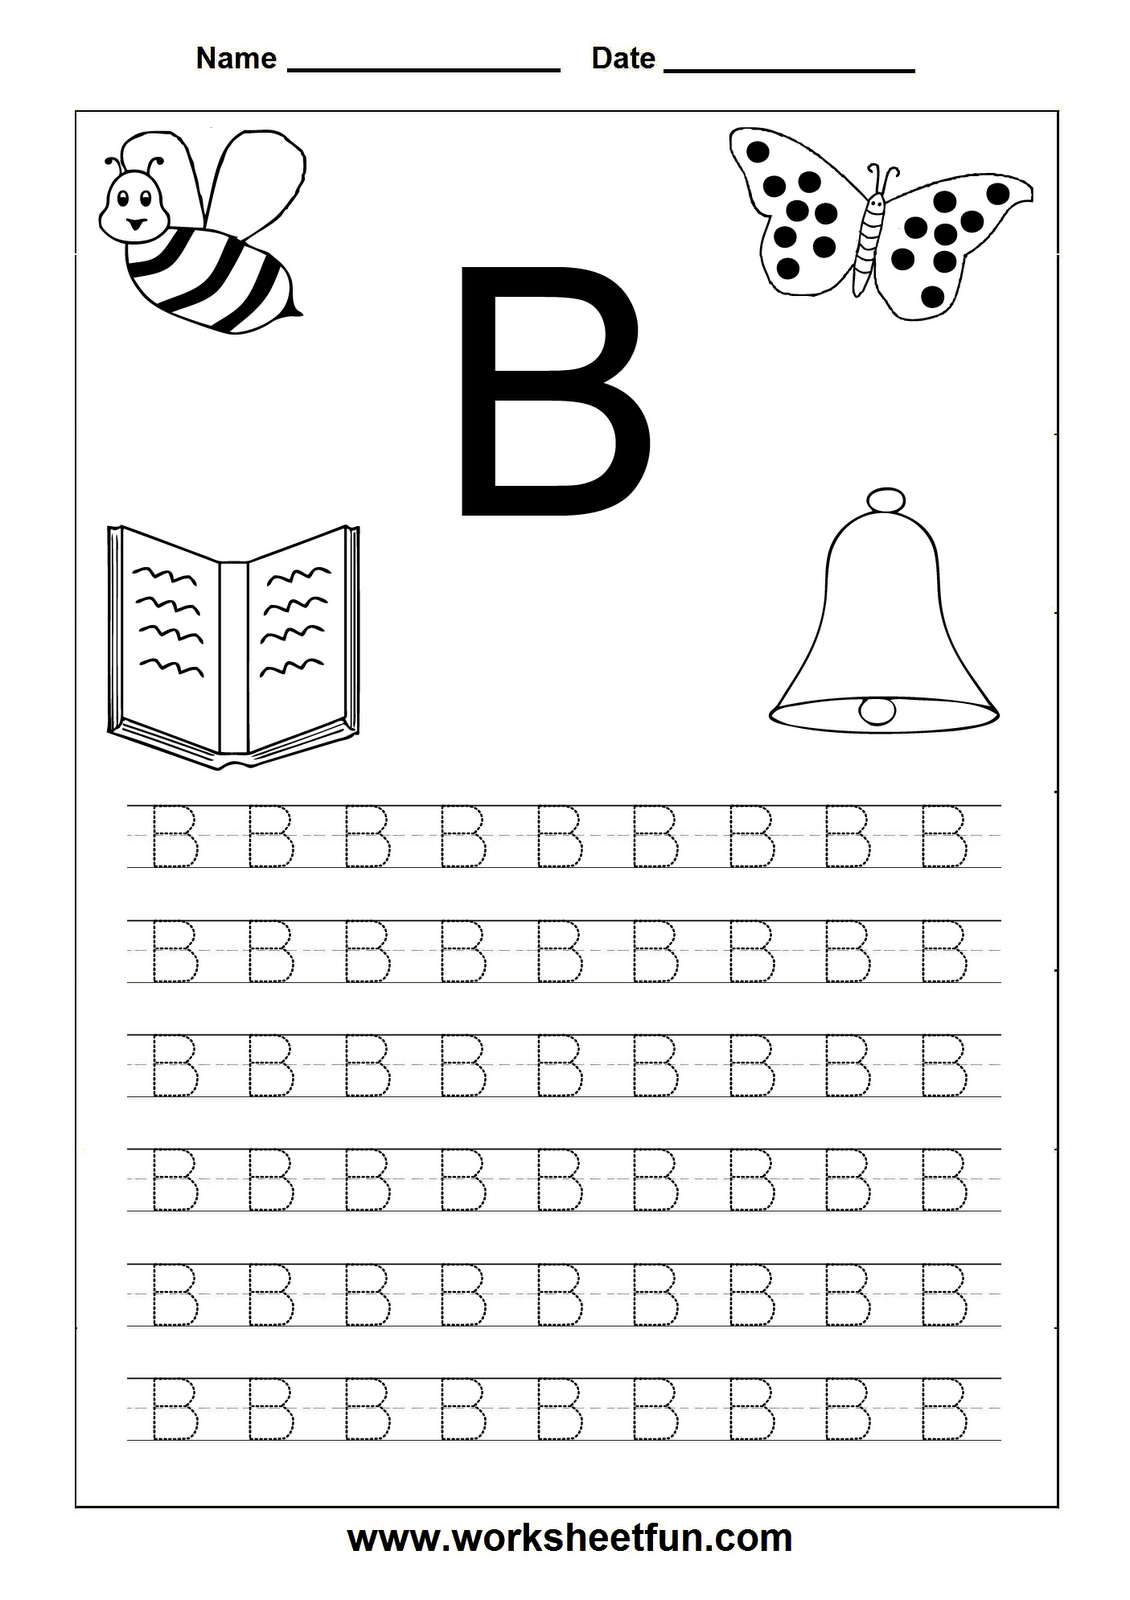 worksheet Letter B Worksheets For Preschool tracing worksheets for letter b school letters pinterest b